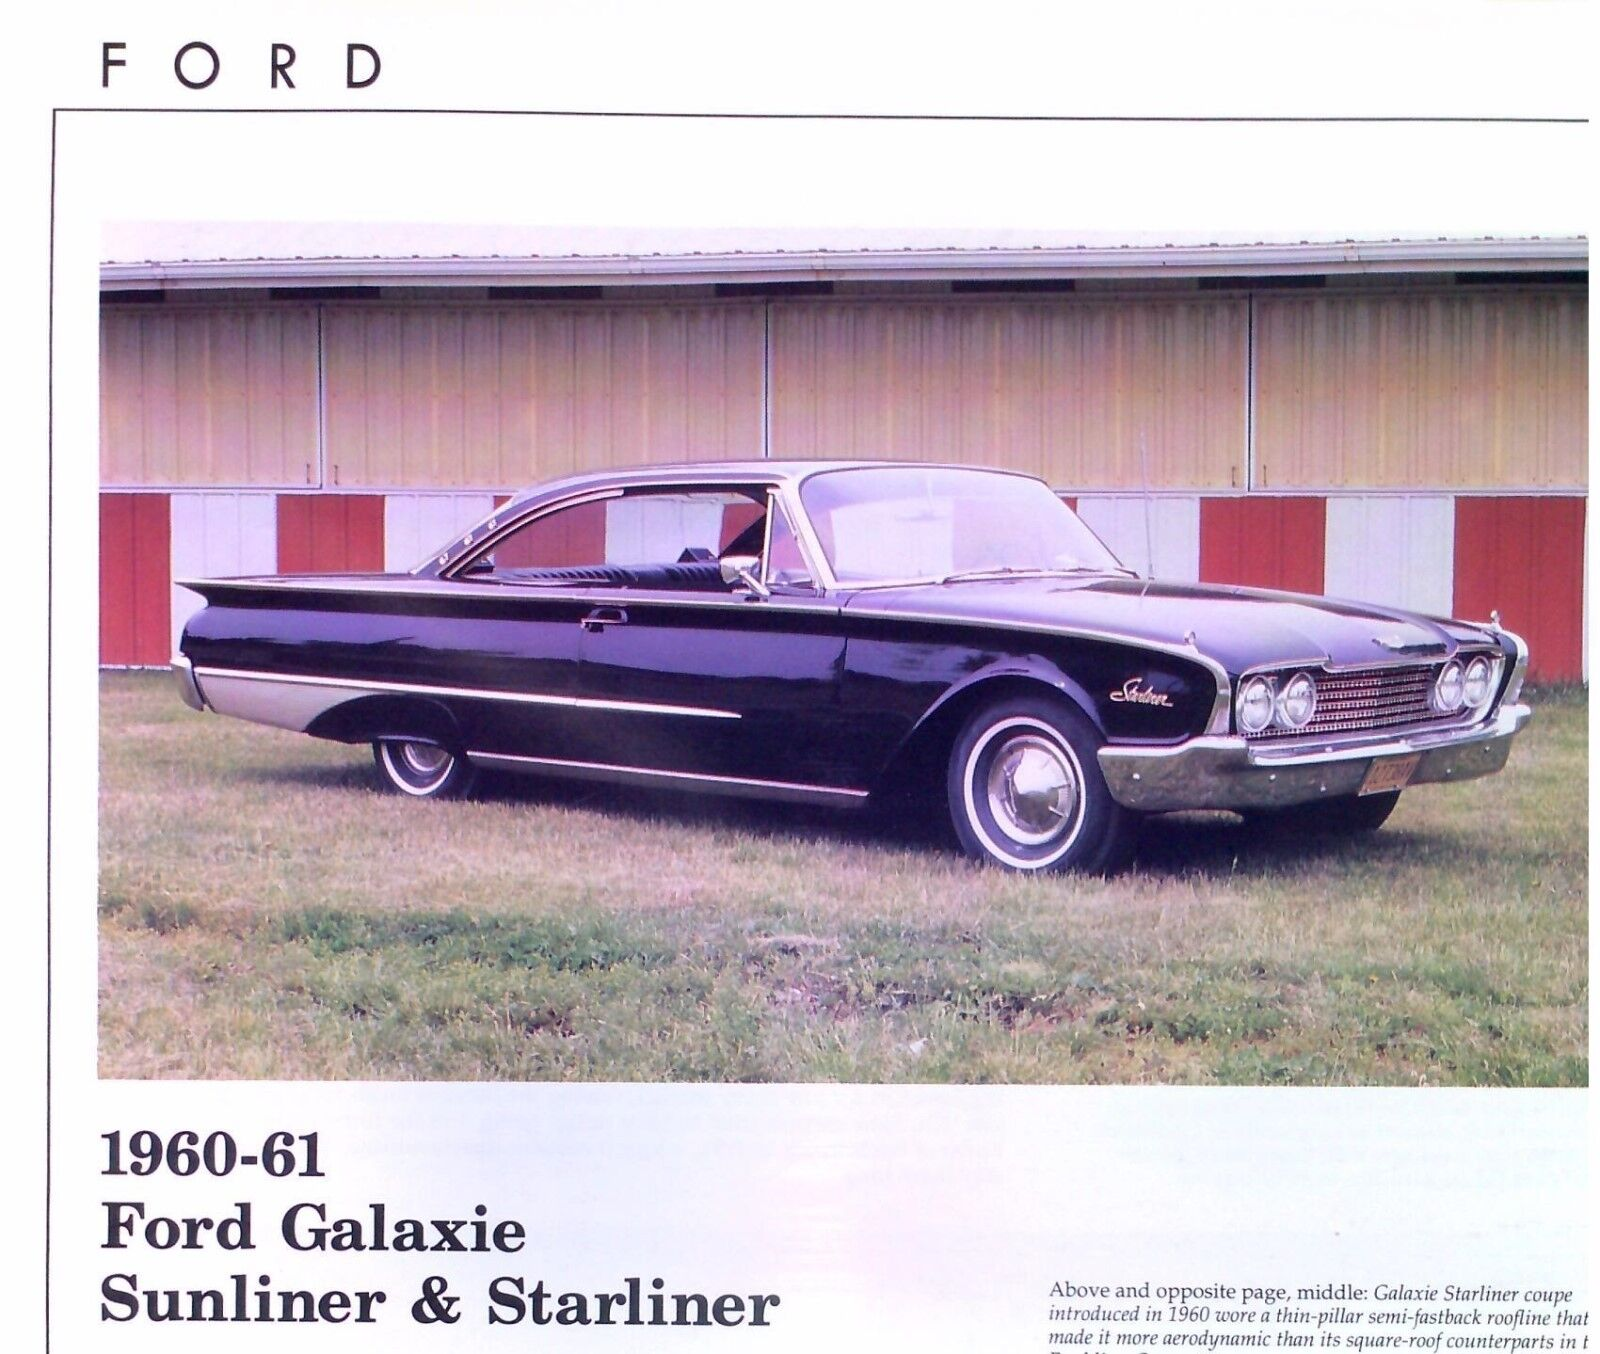 1960 1961 Ford Galaxie Sunliner Starliner Info Specs Production Wiring Diagram 1956 Fairlane Number 1 Of 4free Shipping